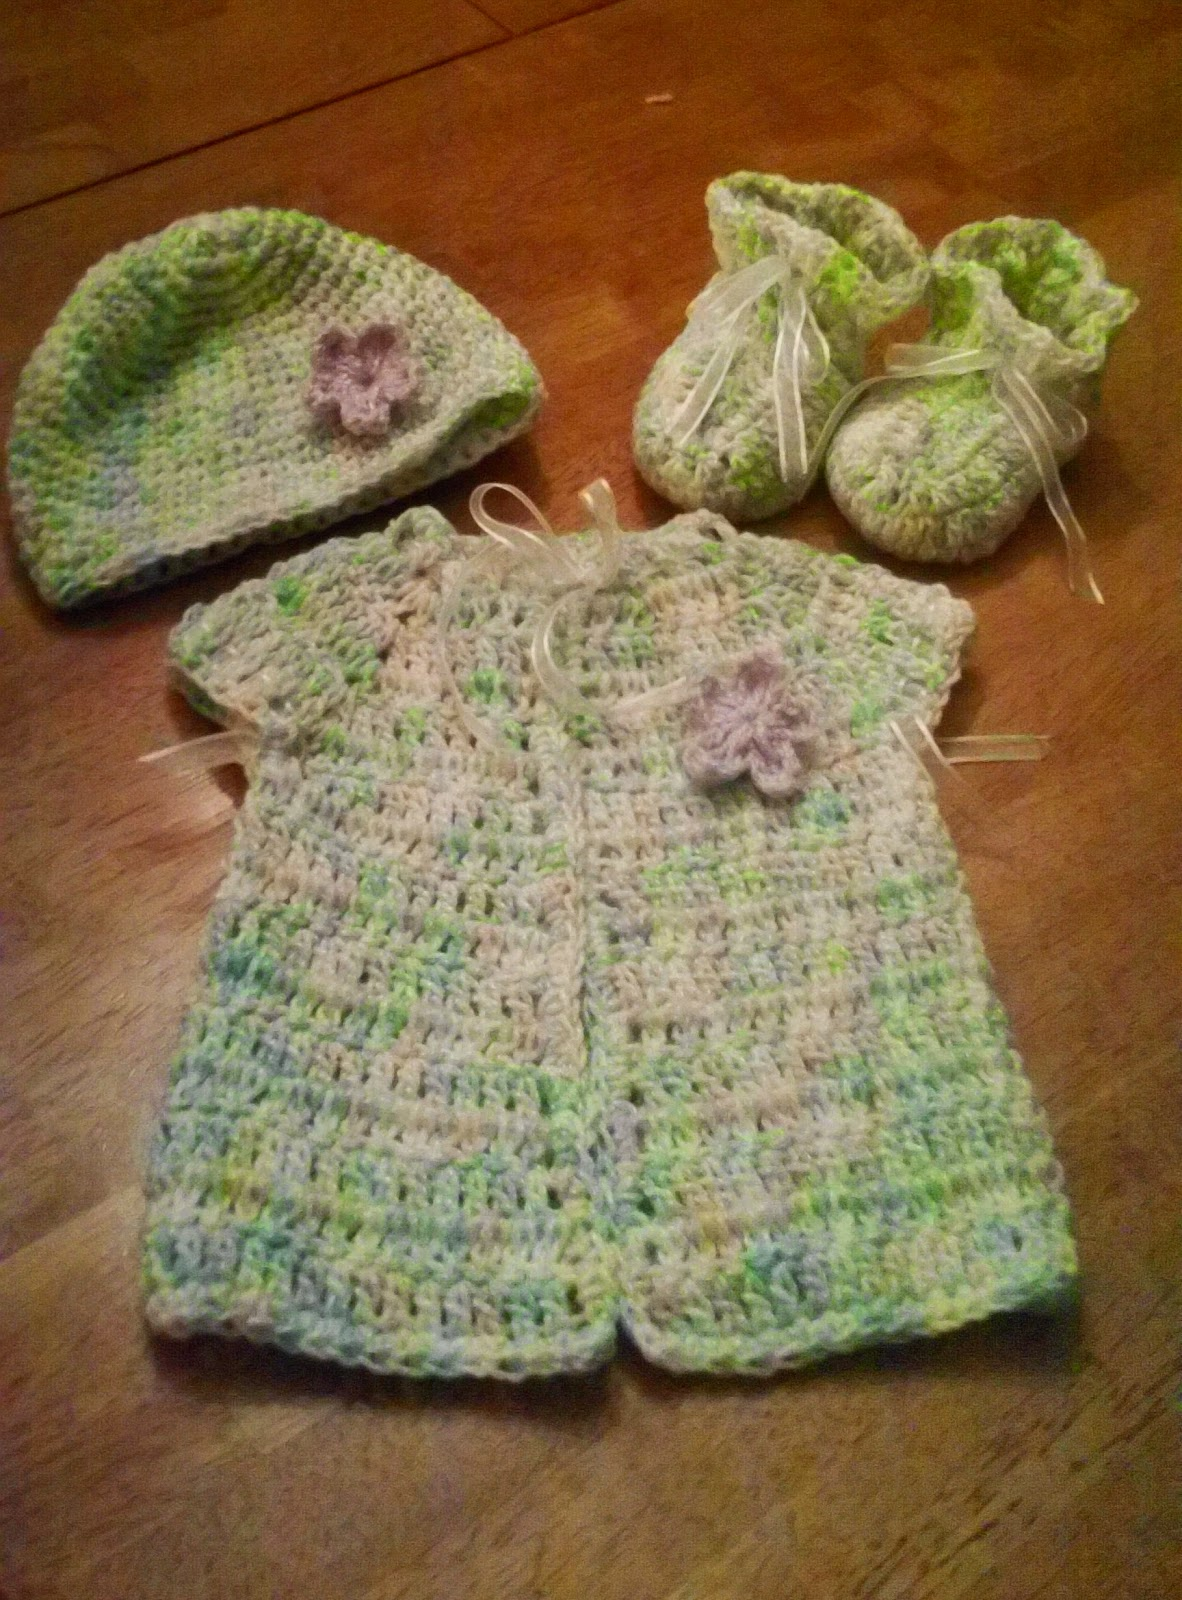 Crochet Pattern For Baby Hat And Sweater : janie crochet designs: crocheted baby sweater,hat and ...